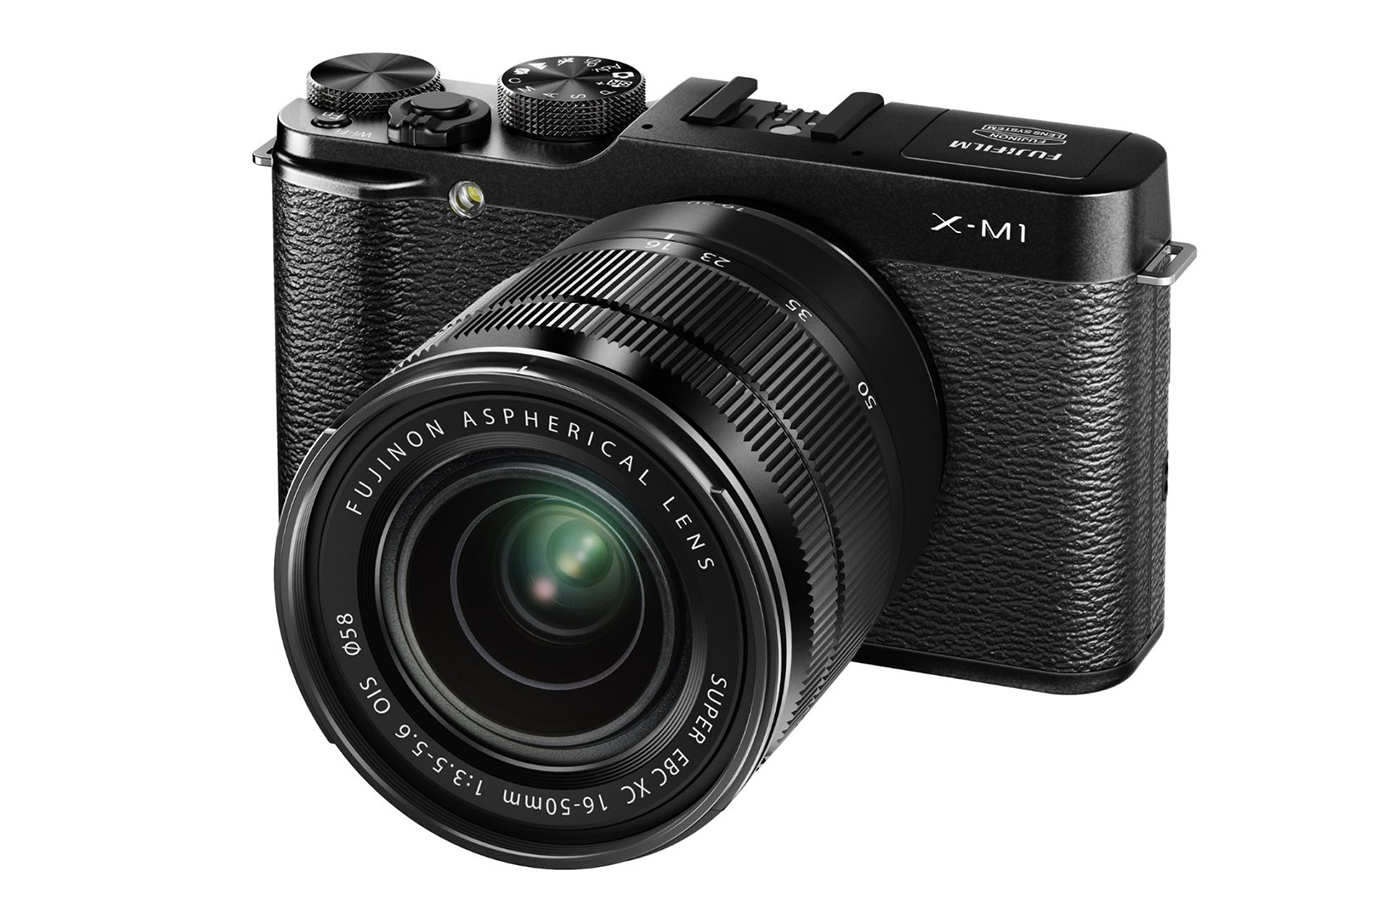 Getting Started with CSC: 6 Mirrorless Cameras Under $600, Fujifilm XM1 Cameraplex